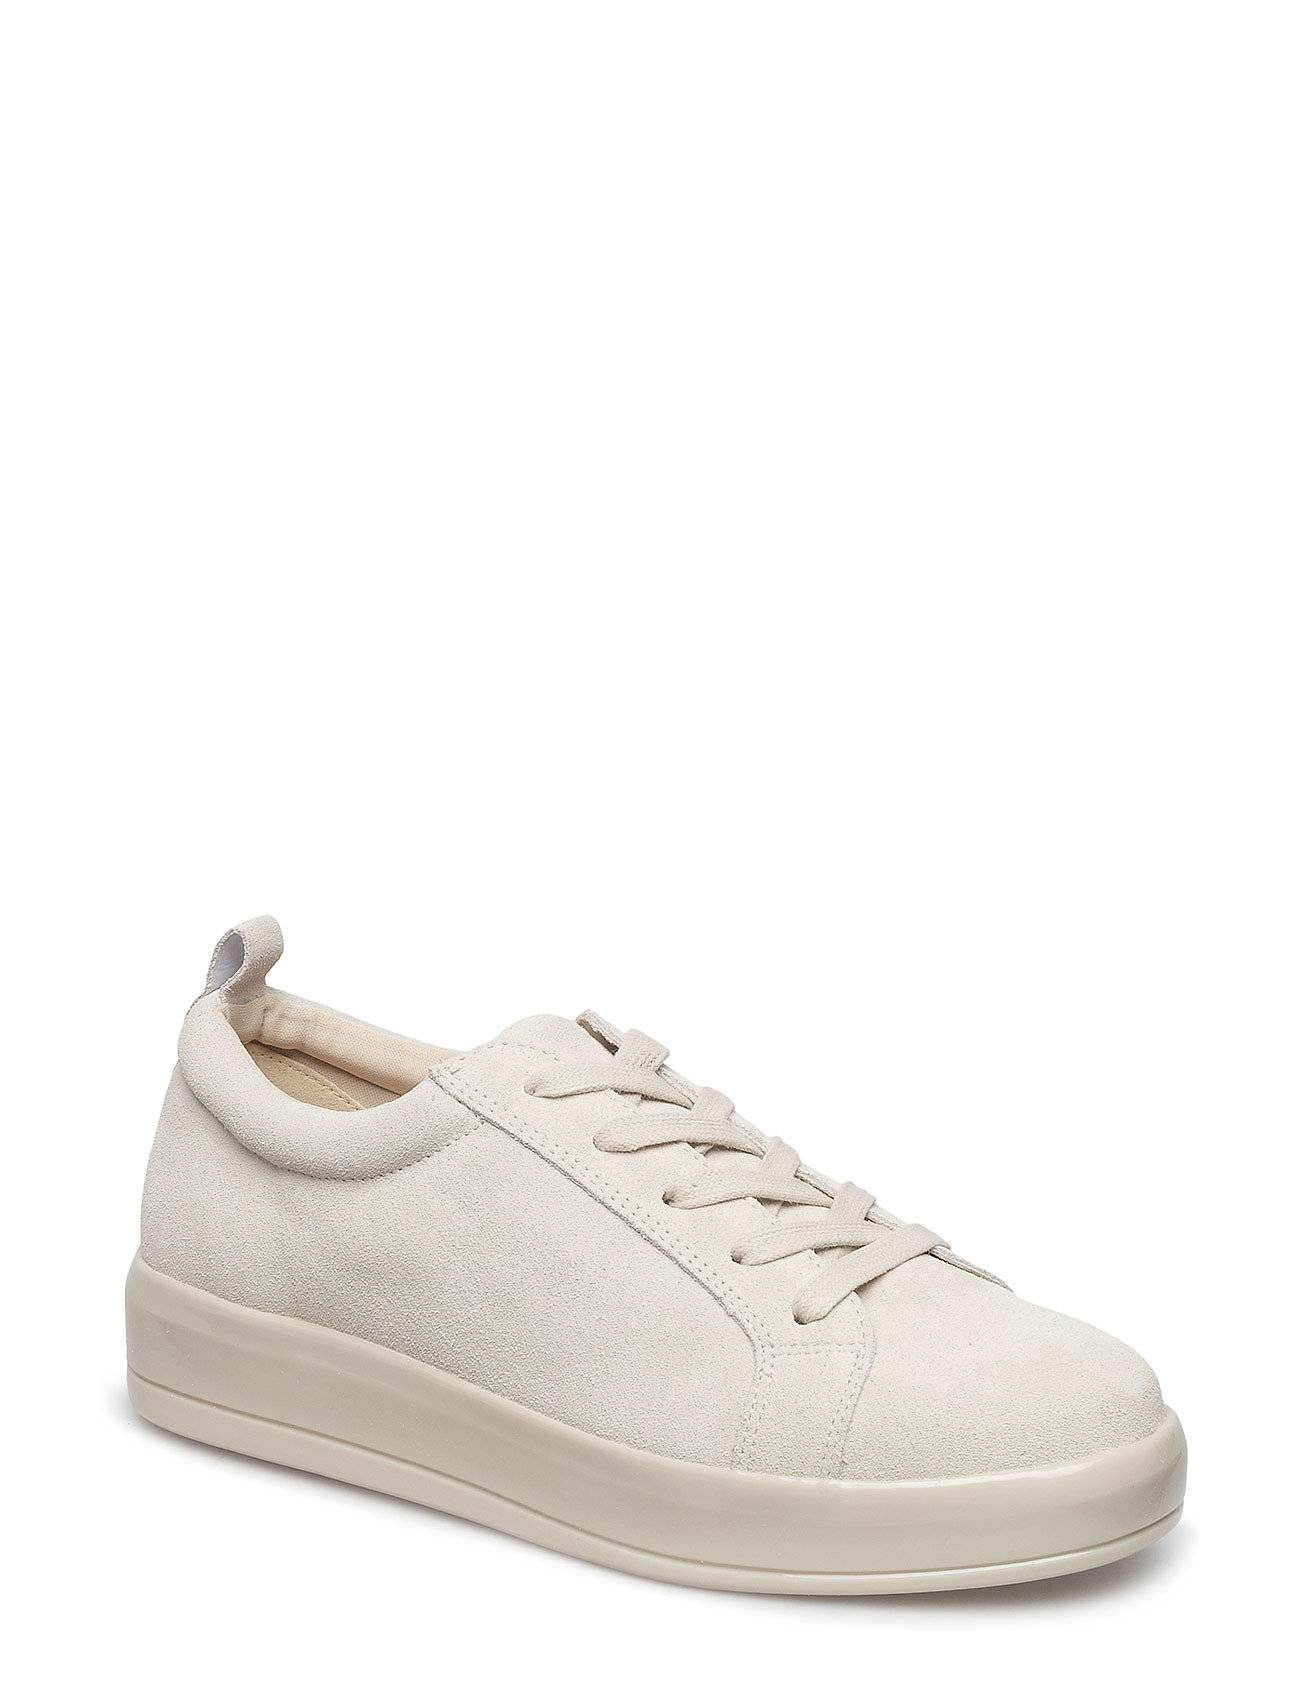 Bianco Laced Up Suede Sneaker Jfm18